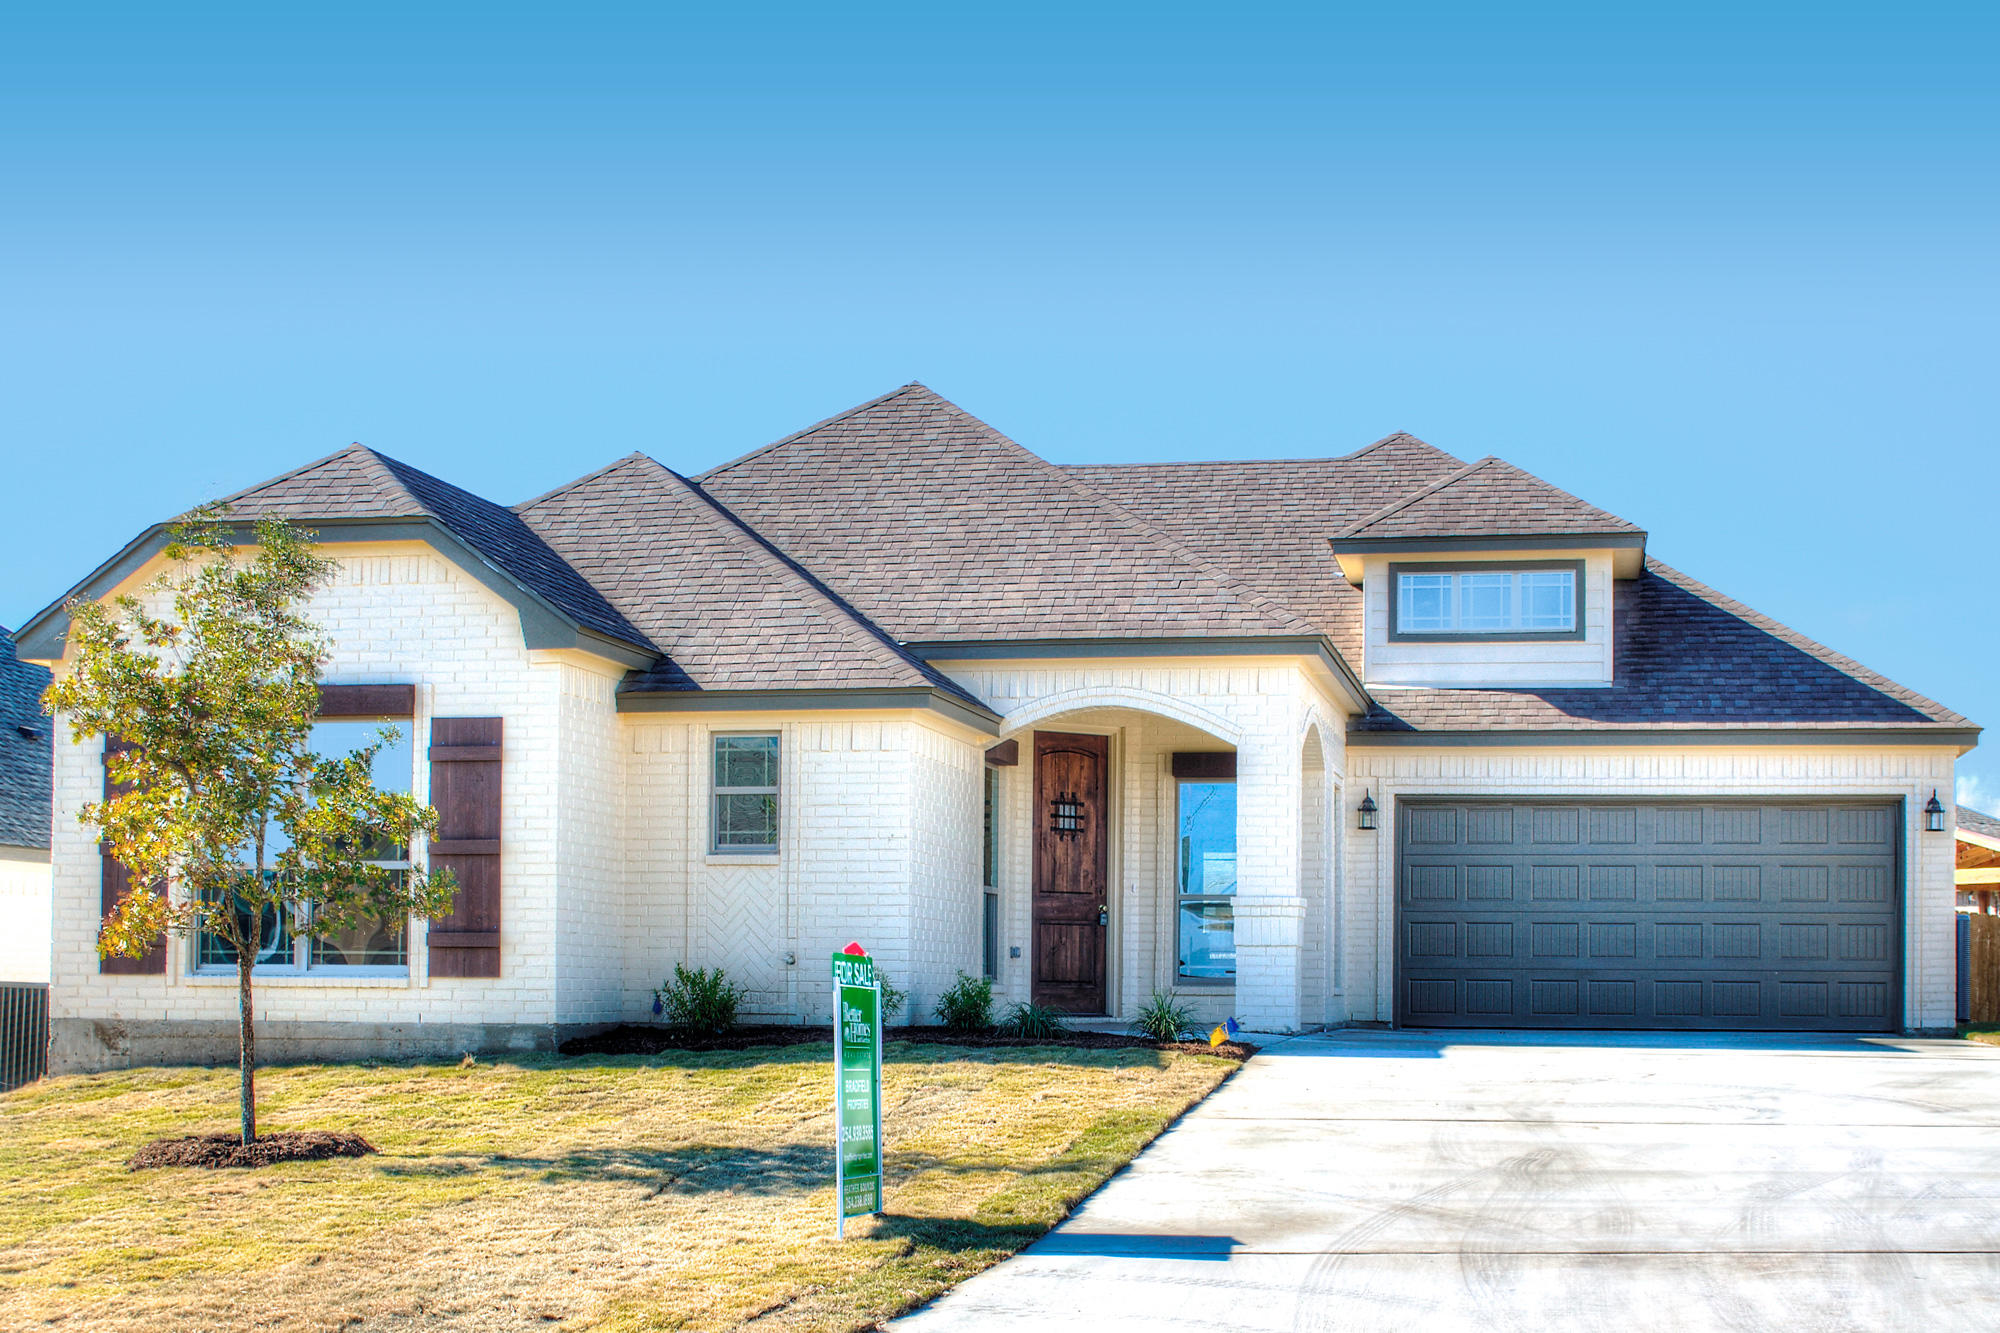 7002 Greenfield Dr For Sale - Harker Heights, TX   Trulia